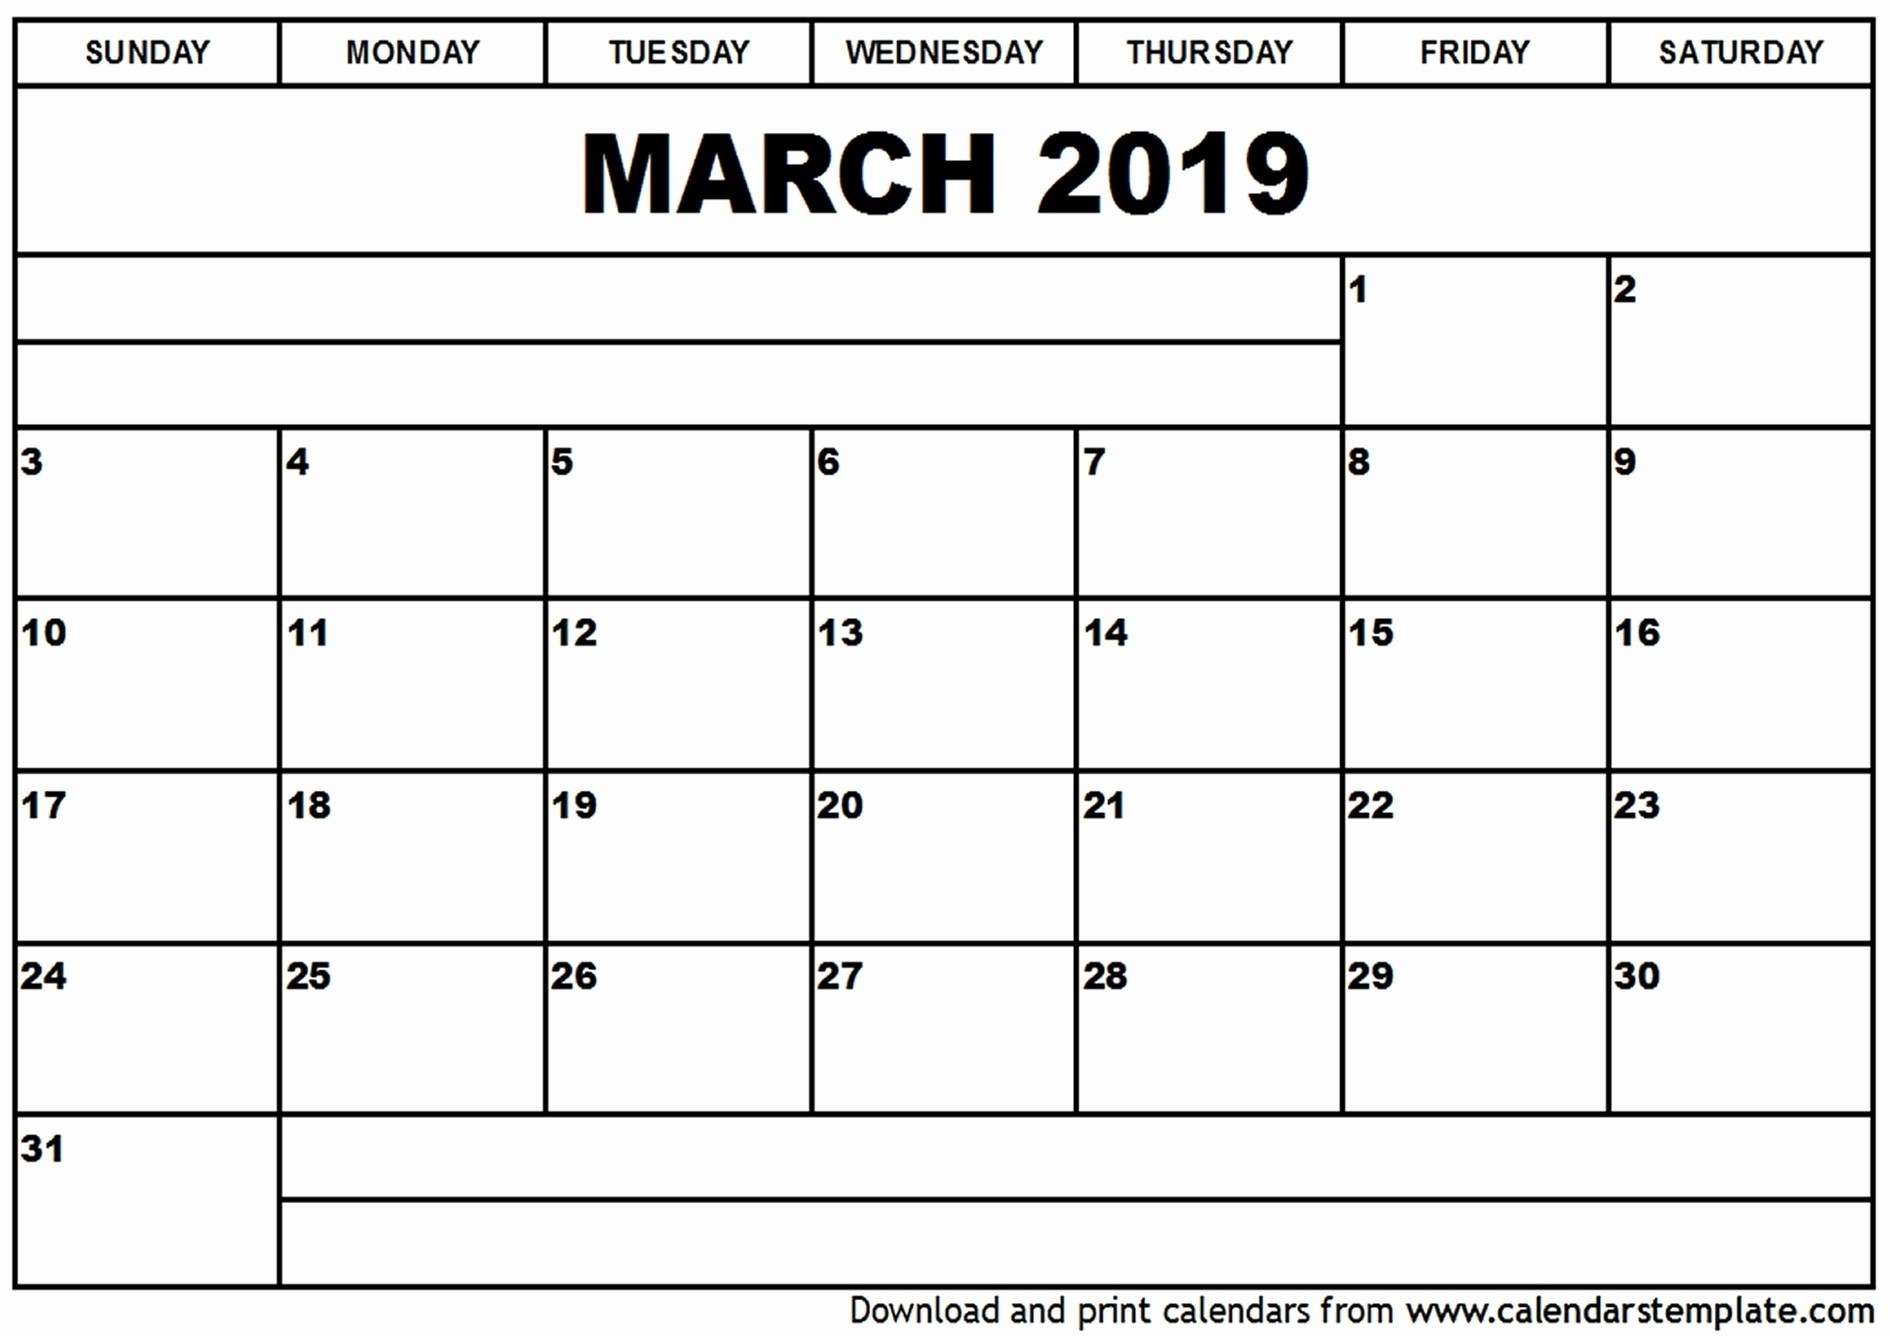 Editable Free Blank Monthly Calendar Template - Calendar-Monday Thru Friday Calendar Template 2020